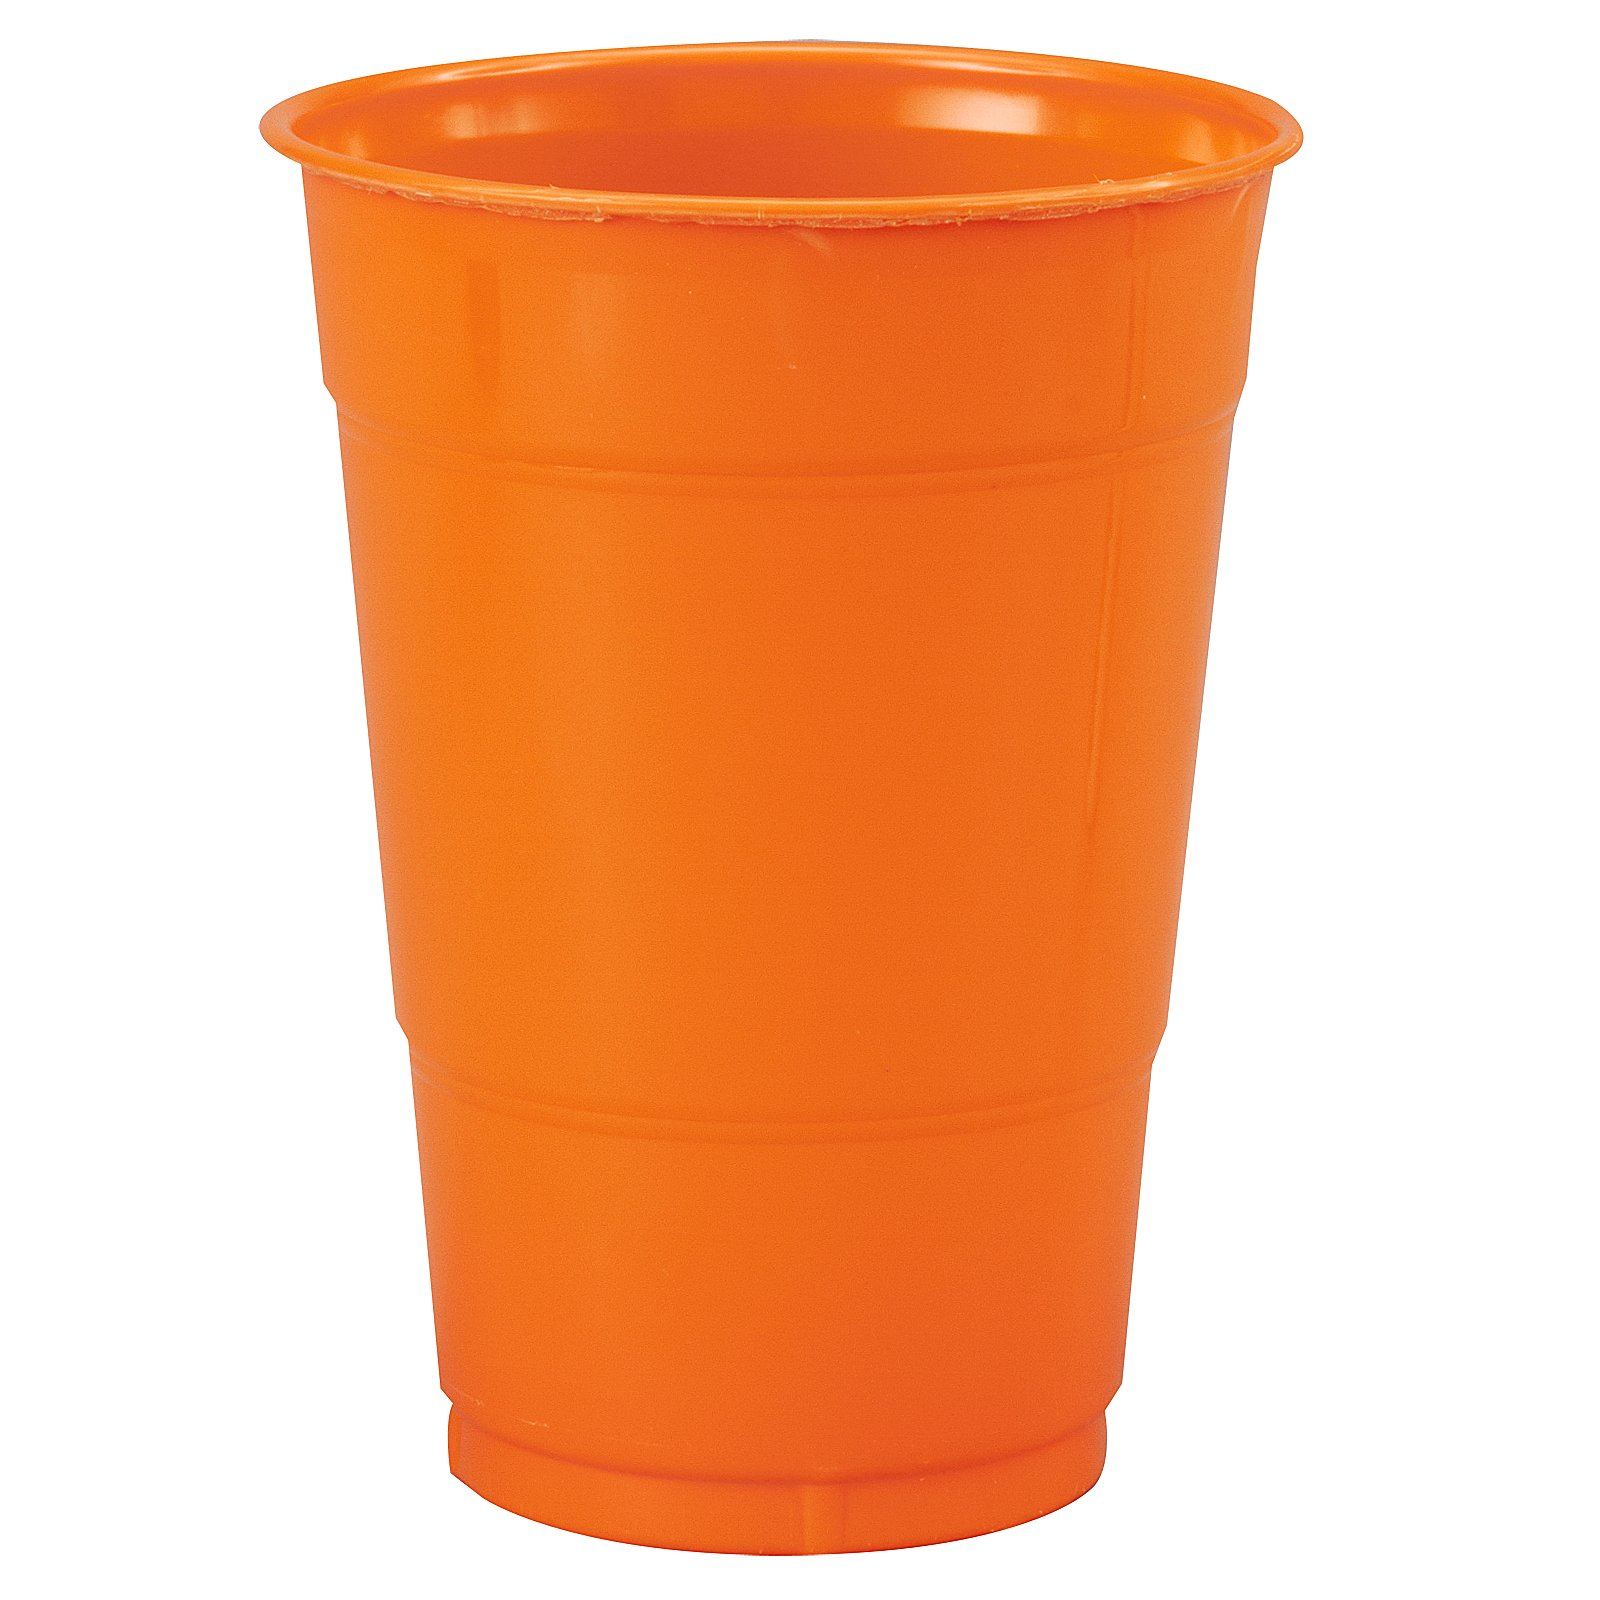 Sunkissed Orange (Orange) 16 oz. Plastic Cups (20 count)